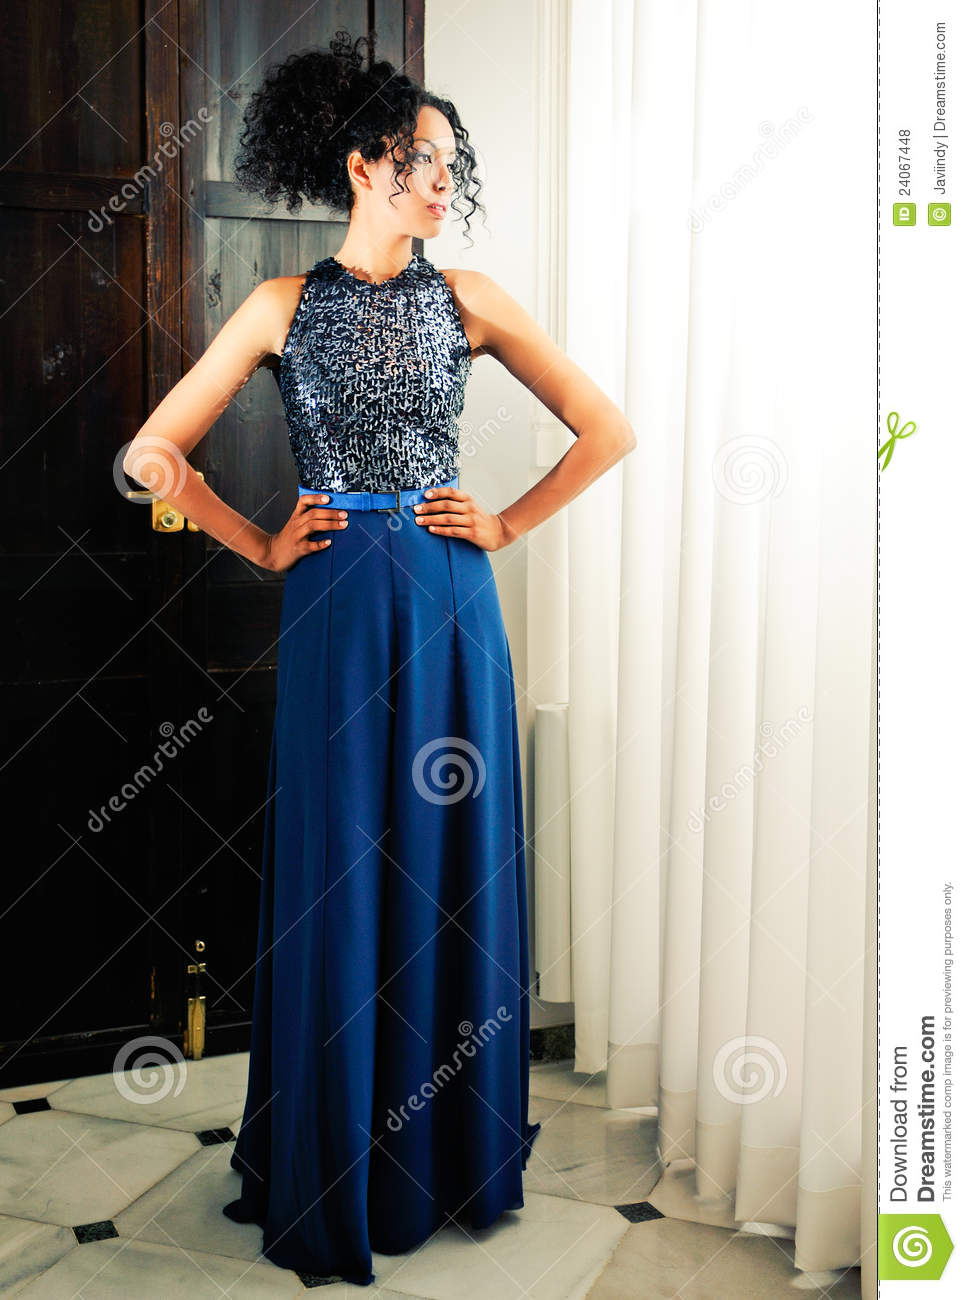 Afro Hair Woman Model Of Fashion With Blue Dress Stock